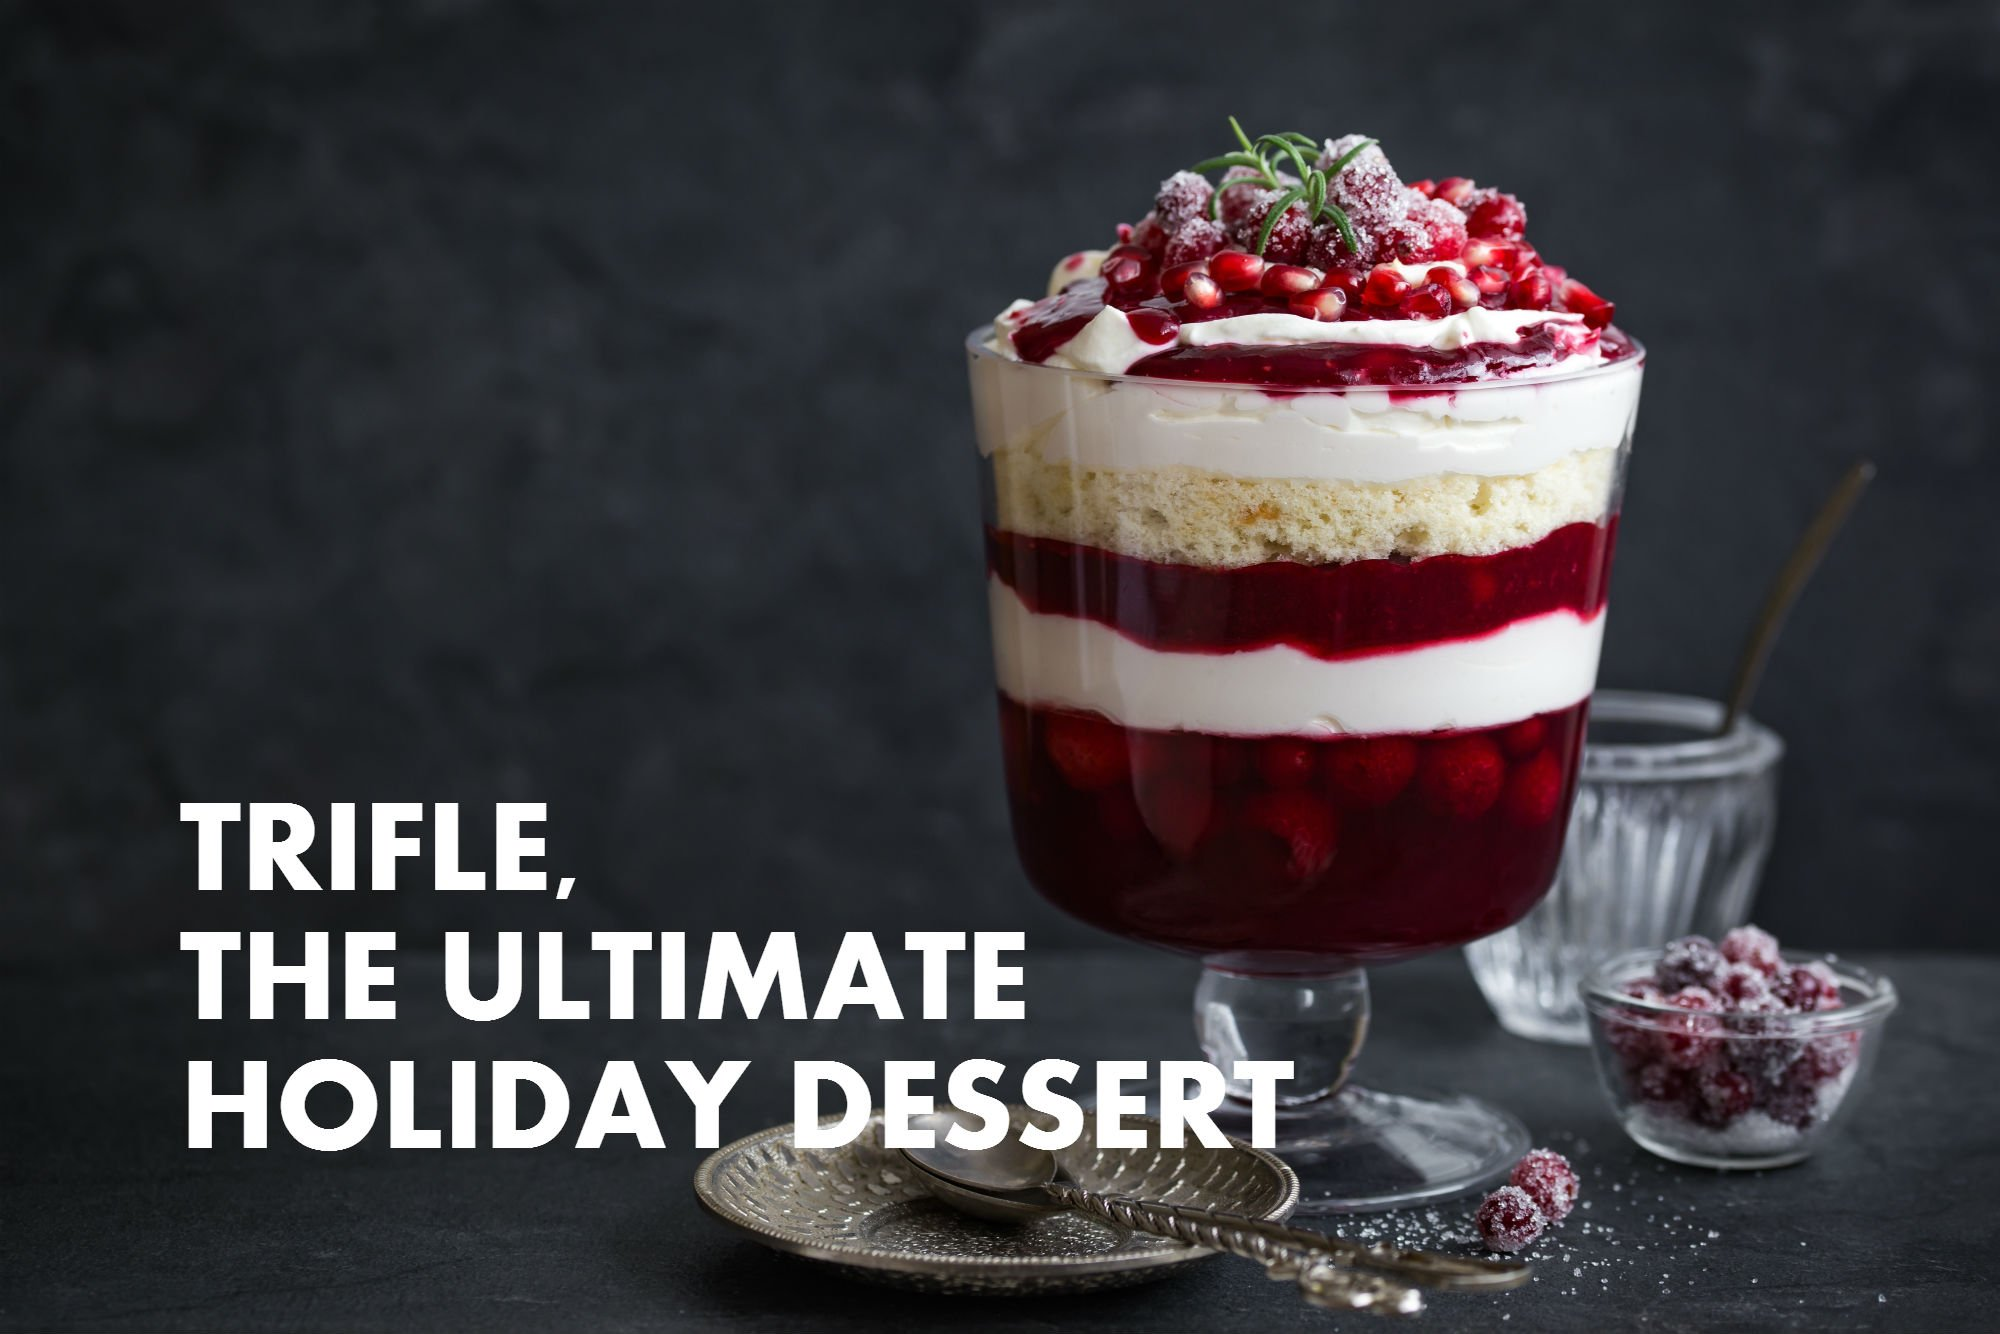 Trifle, The Ultimate Holiday Dessert